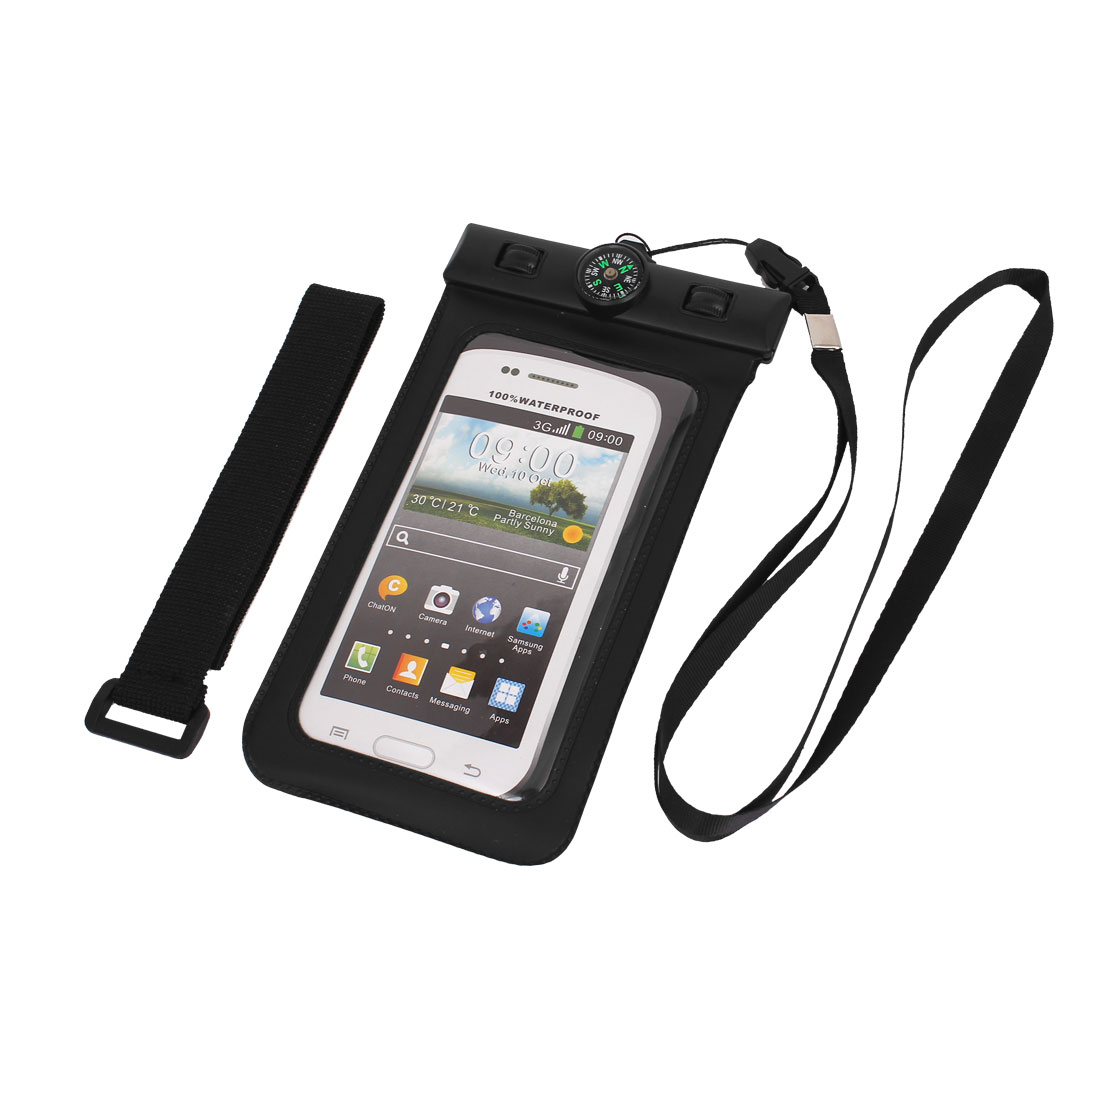 "Waterproof Bag Holder Pouch Black for 4.5"" Mobile Phone w Neck Strap Compass"